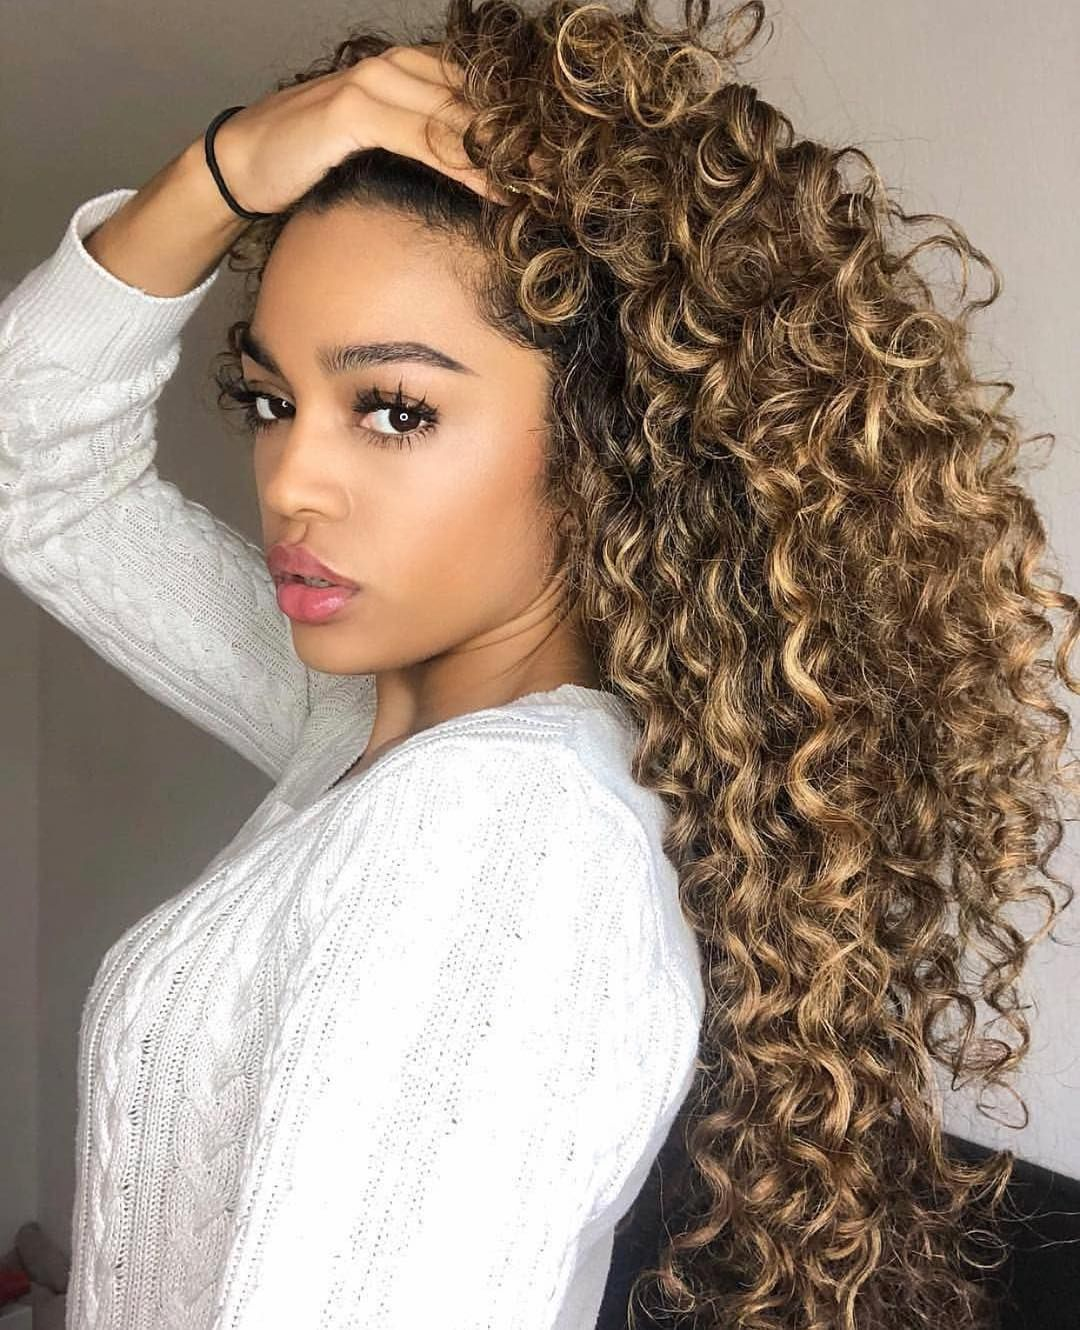 Lace Frontal Wigs Short Curly Hairstyles For Girls Half Up Half